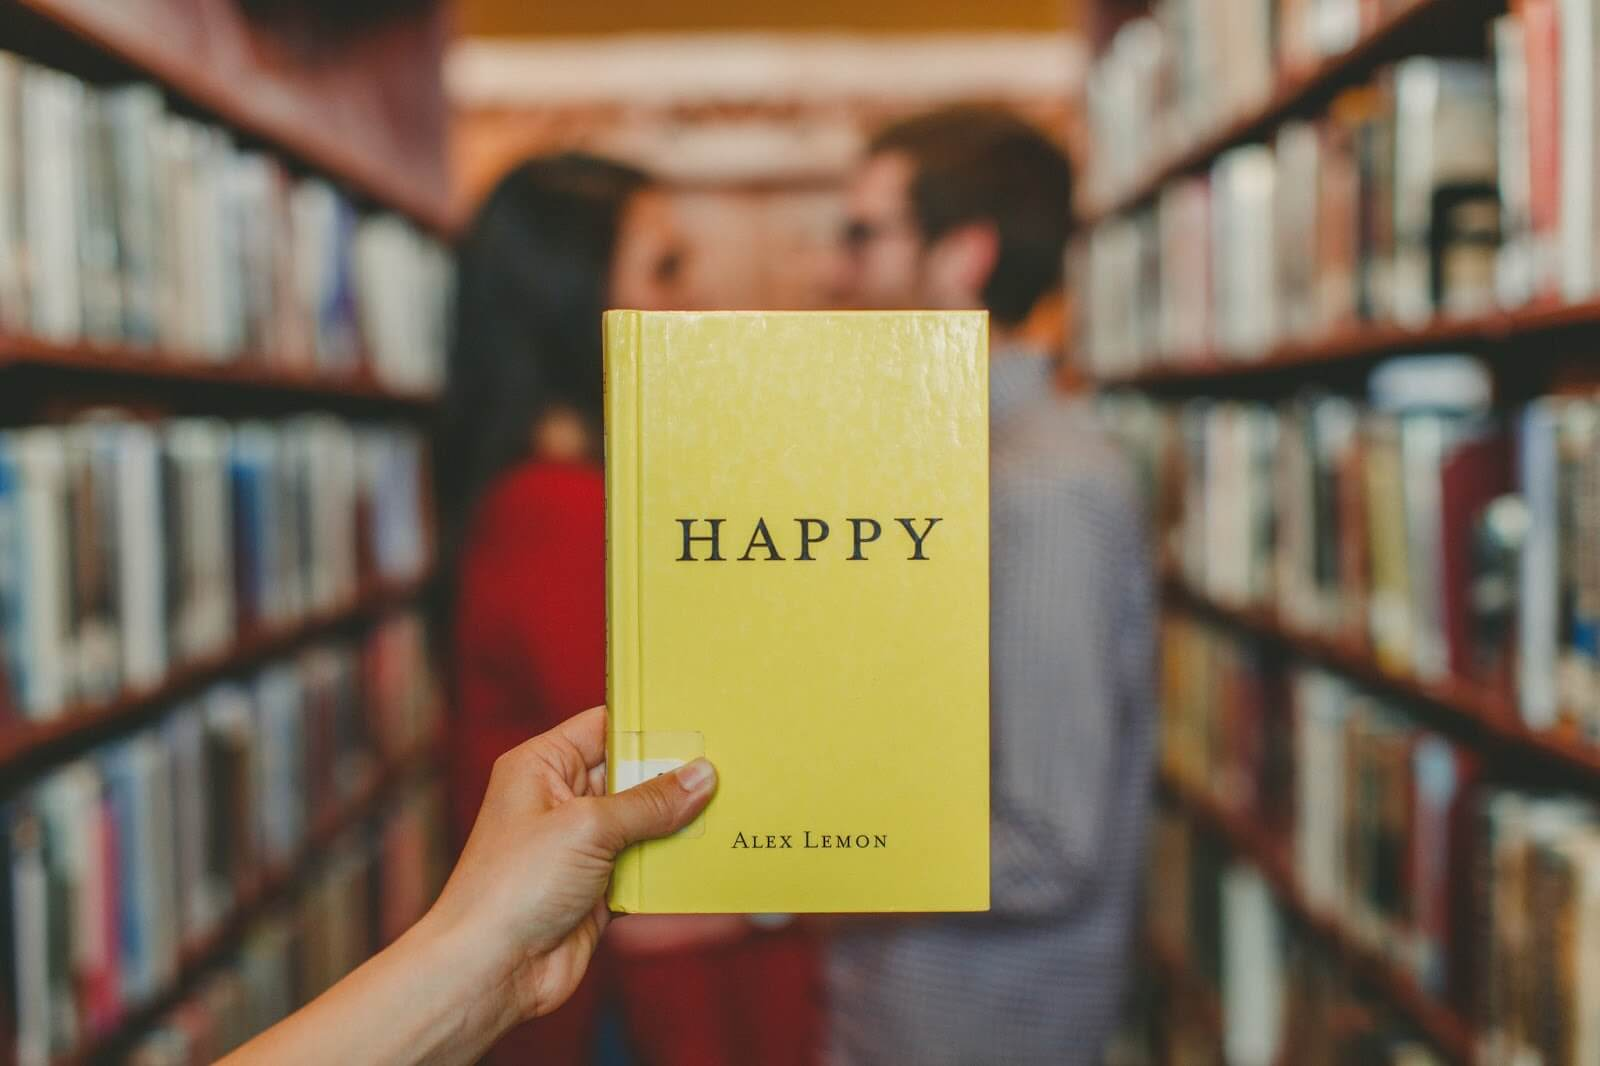 relationship dilemma questions - couple in a library with someone holding up a yellow book called Happy